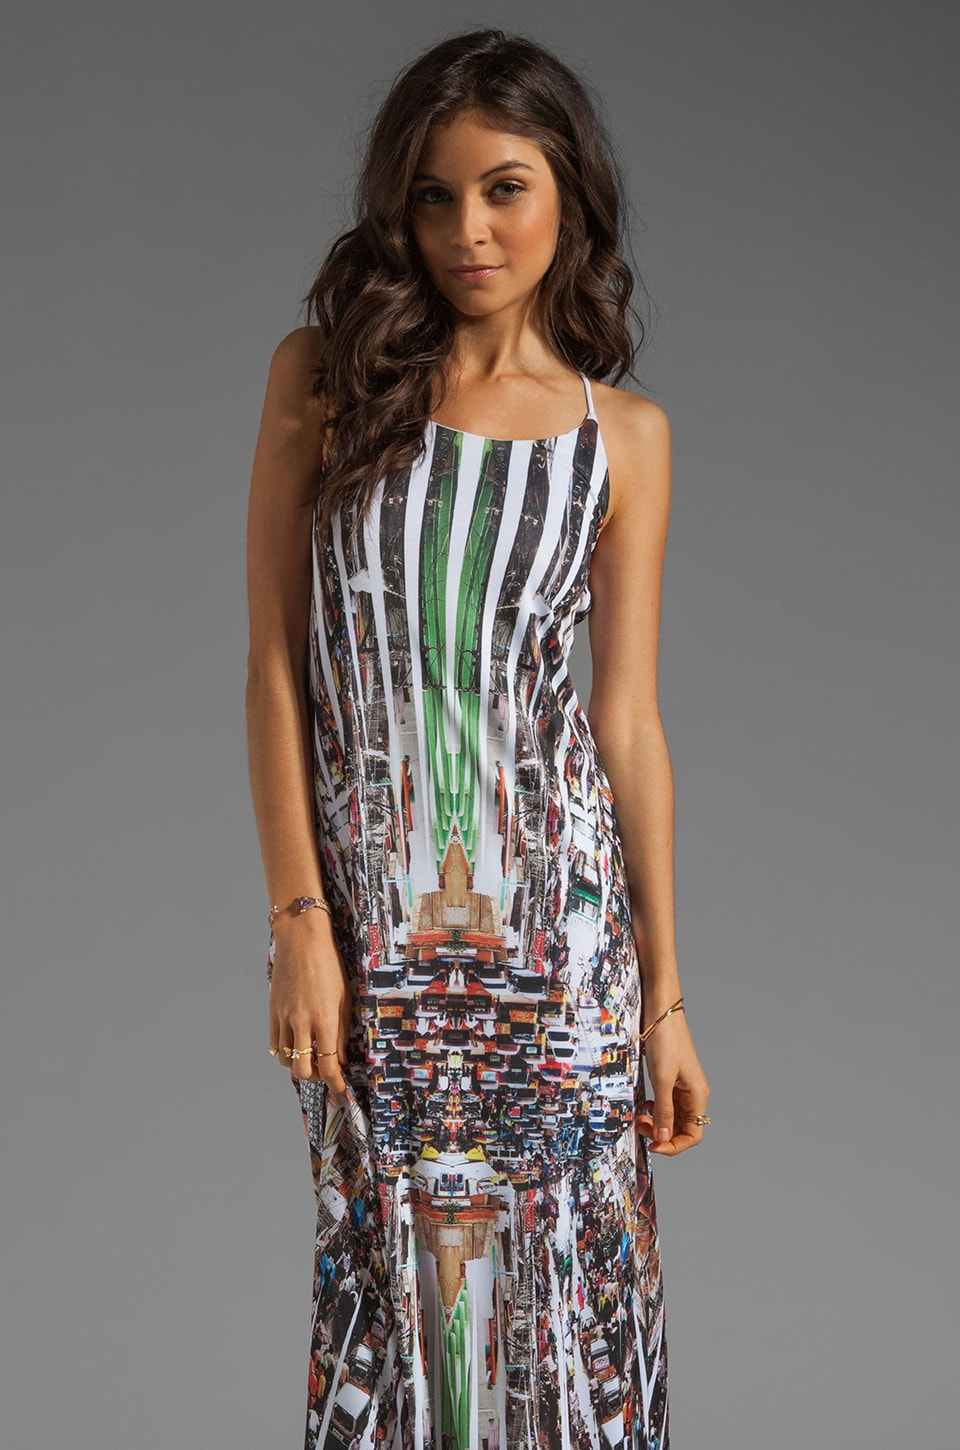 Clover Canyon Stop Traffic Dress in Multi